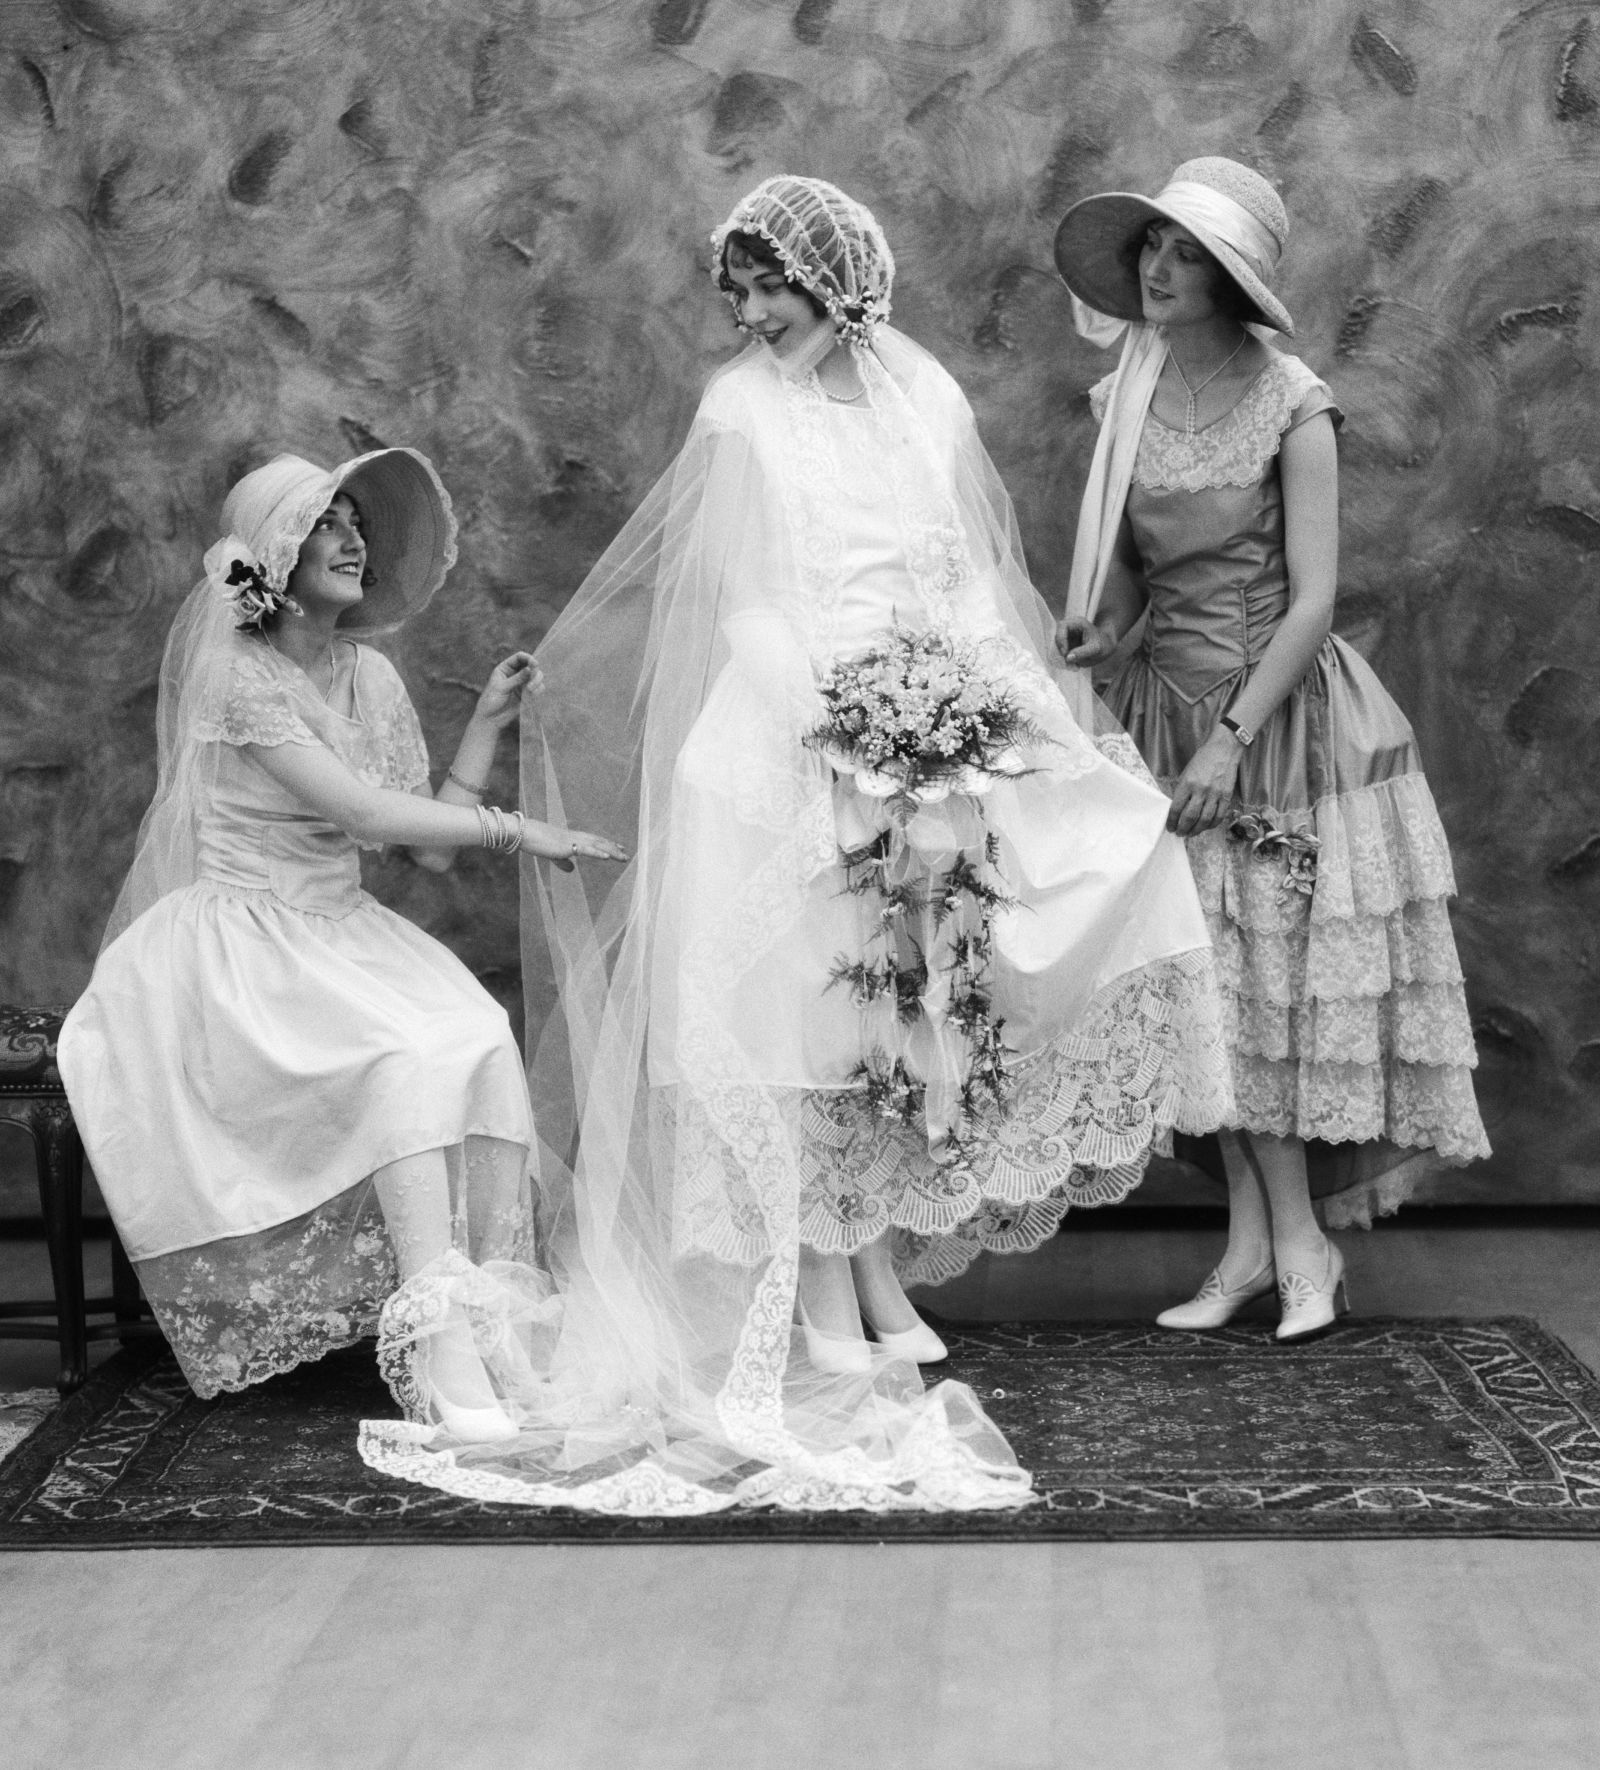 75 Years of Vintage (and Totally Outrageous) Bridesmaid